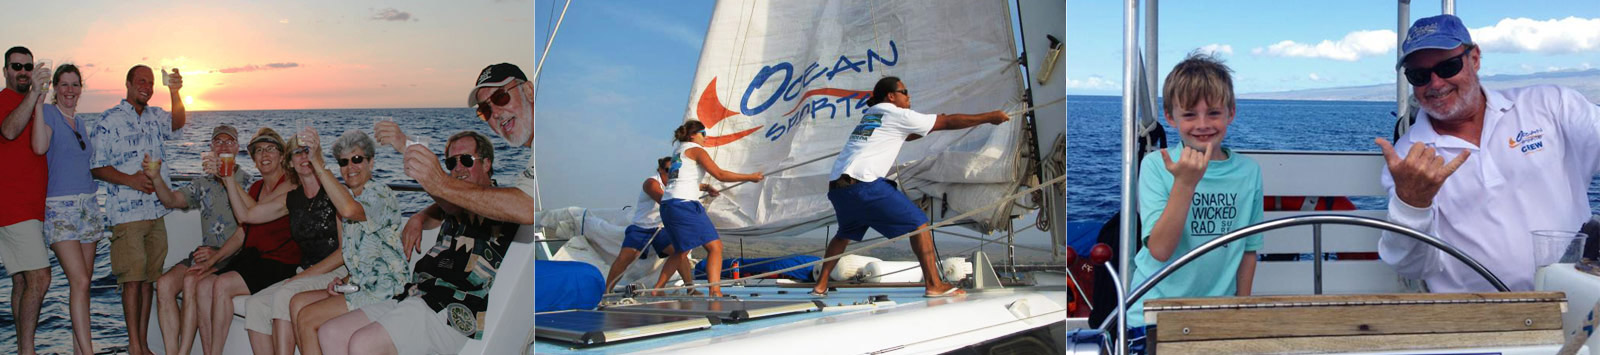 Private Charters - Custom Cruises - Hawaii Ocean Sports